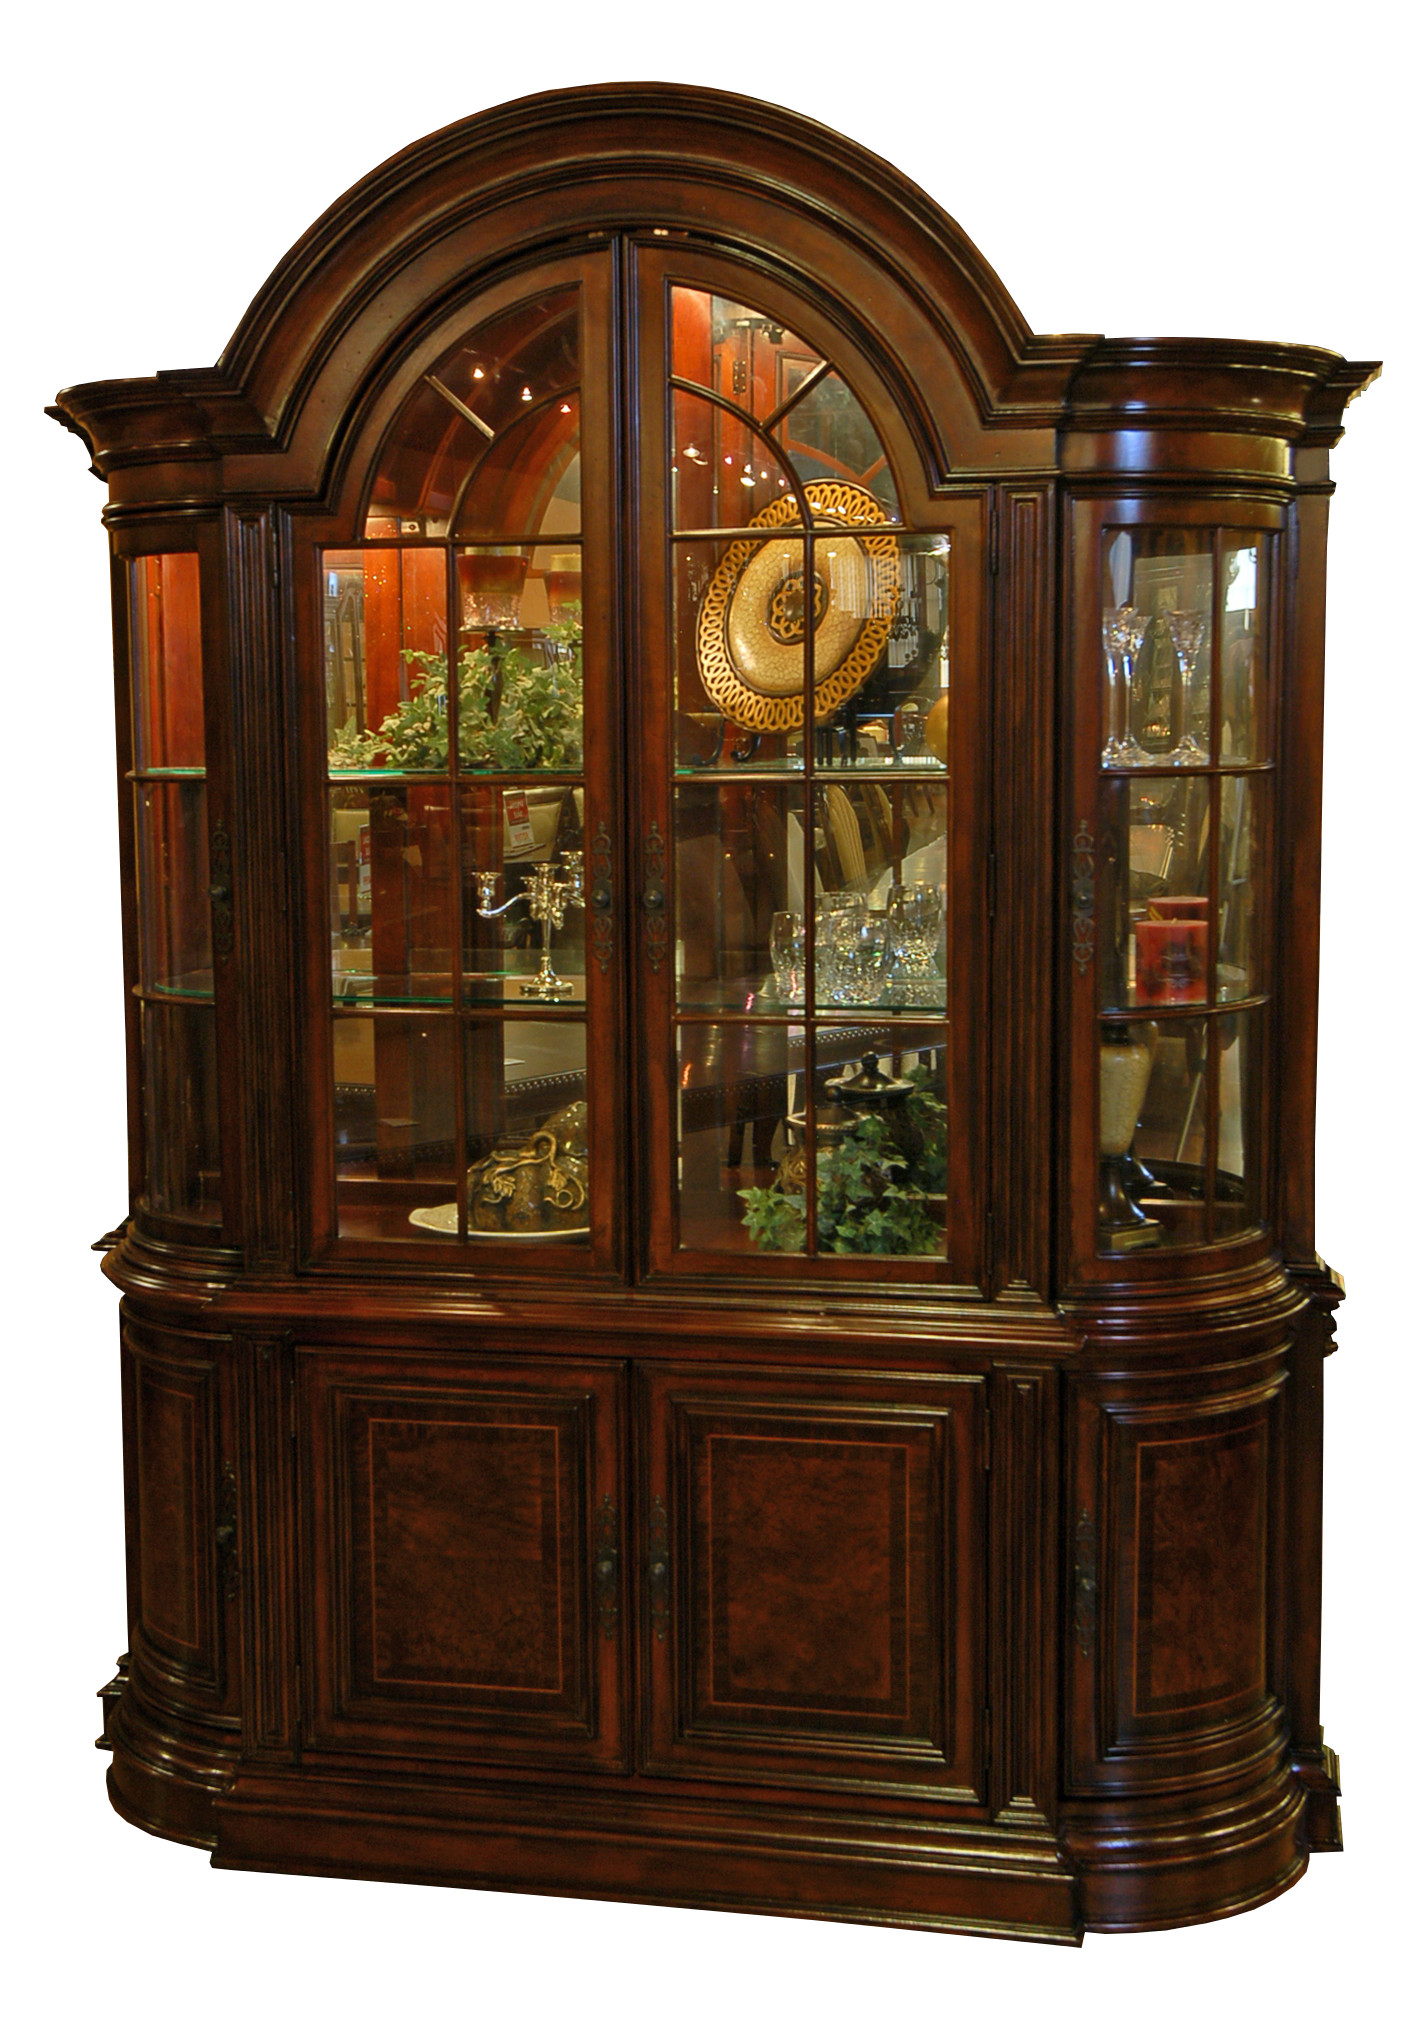 Dining room buffet and hutch china cabinet ebay for Dining cabinet furniture